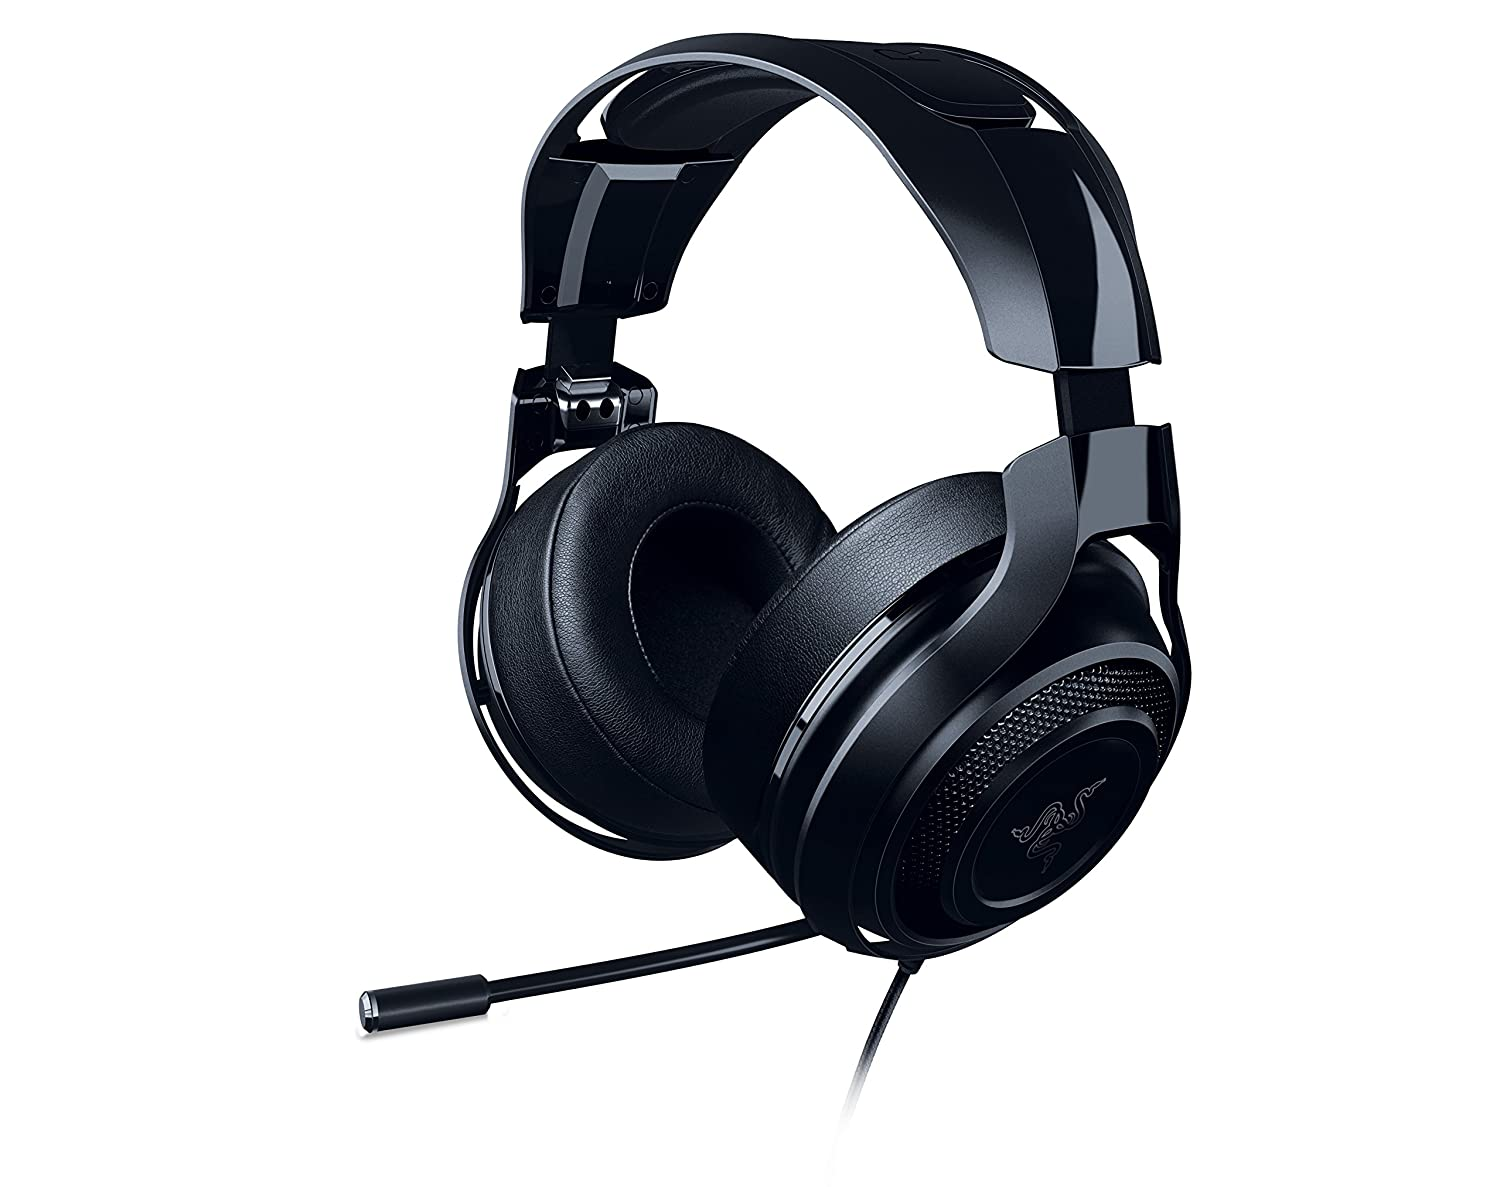 Razer ManO'War 7.1 Surround Sound Gaming Headset Compatible with PC, Mac, Playstation 4, and Xbox One